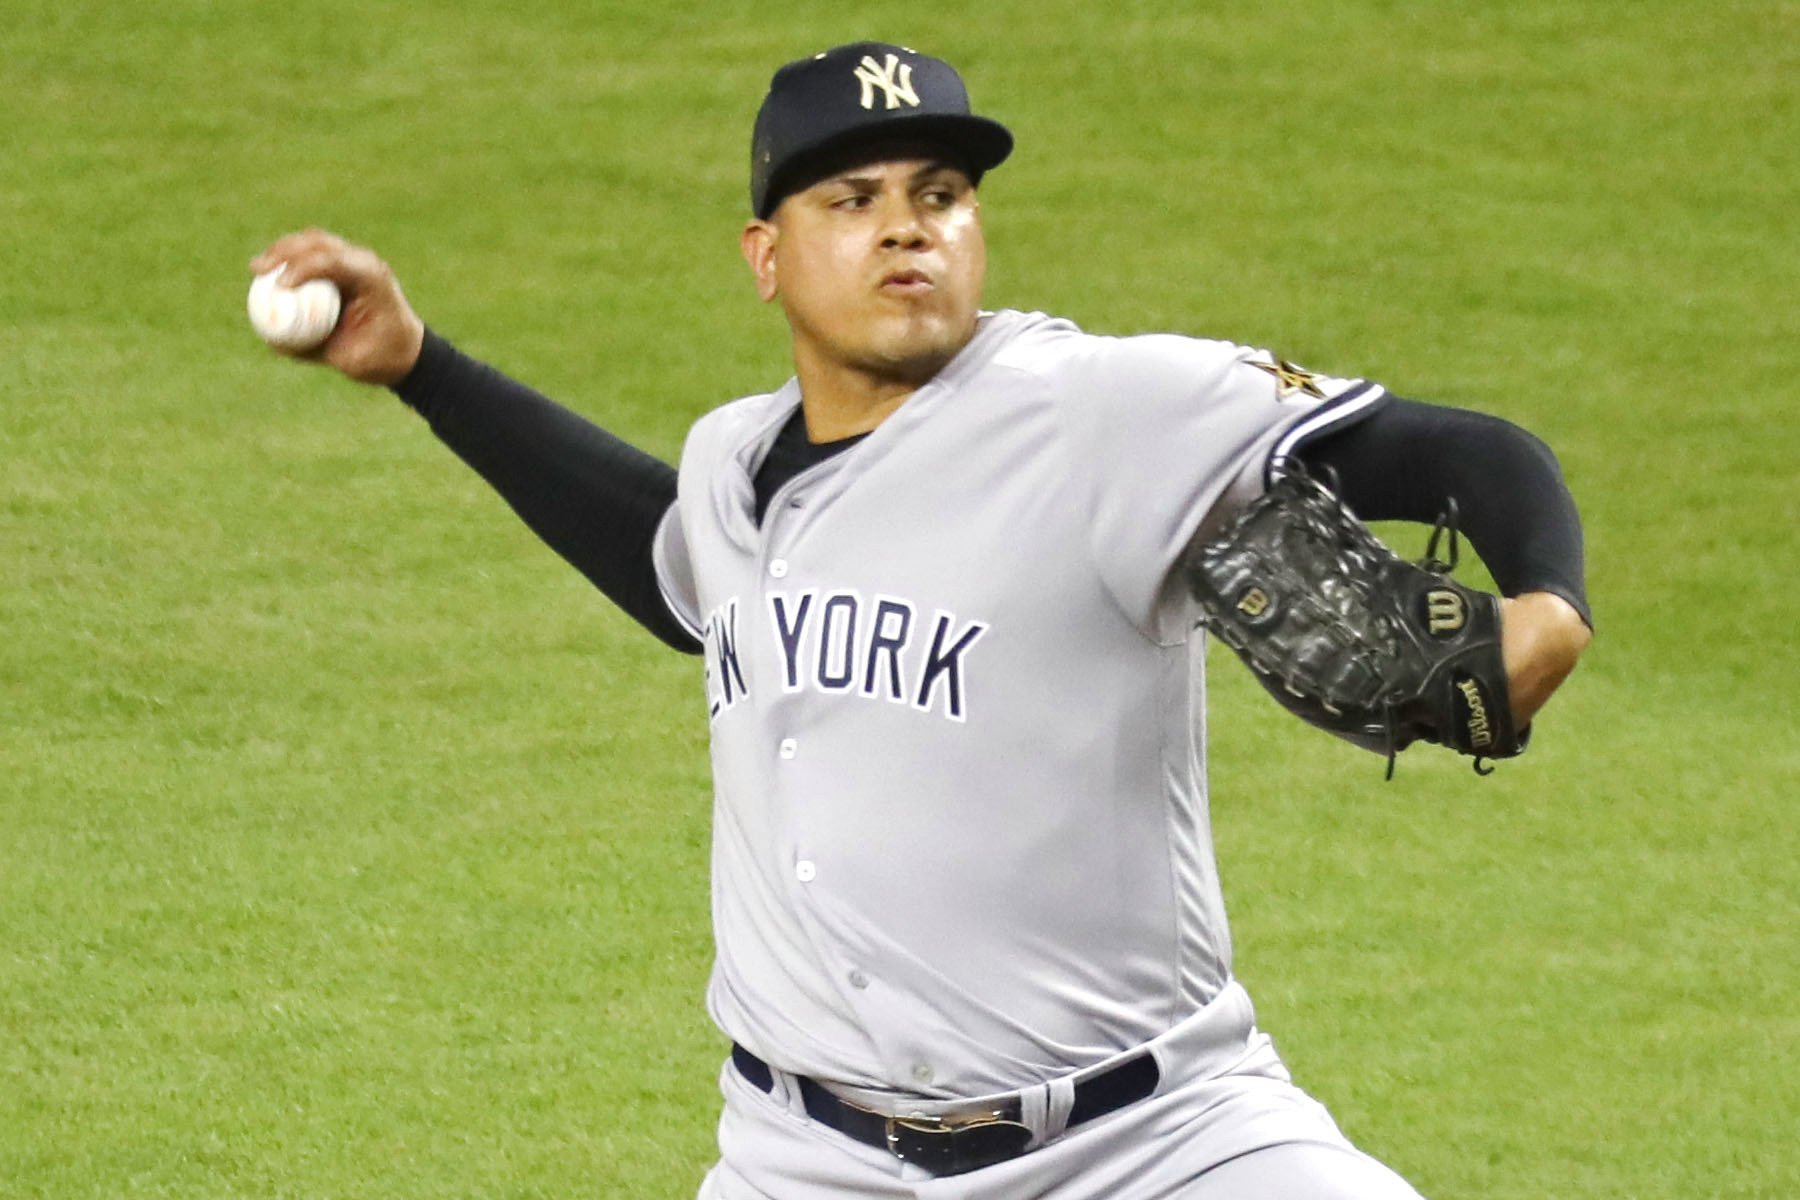 Yankees avoid embarrassing Dellin Betances battle repeat